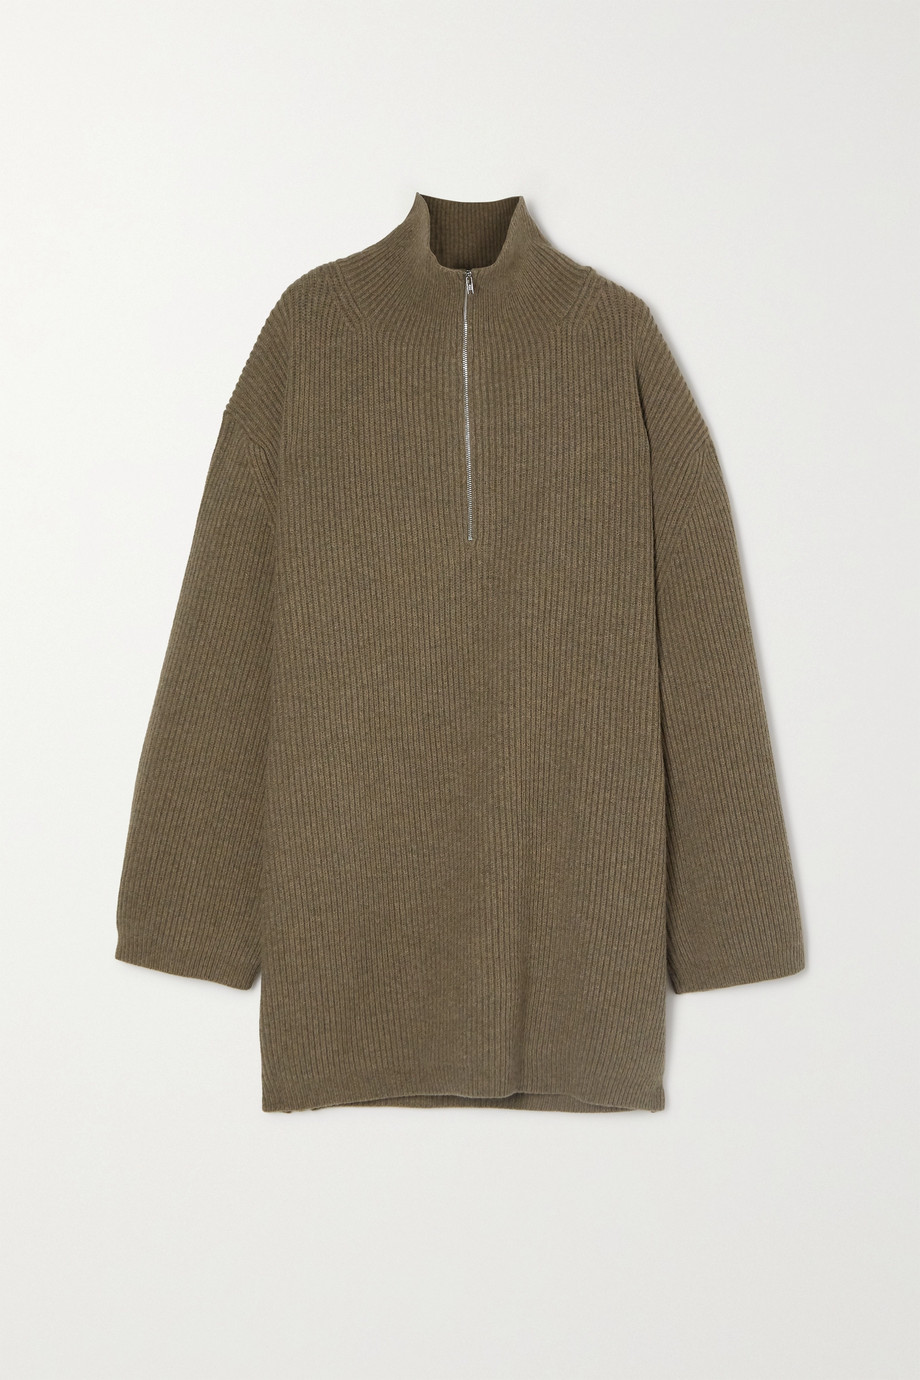 Totême Tomar ribbed wool-blend turtleneck sweater